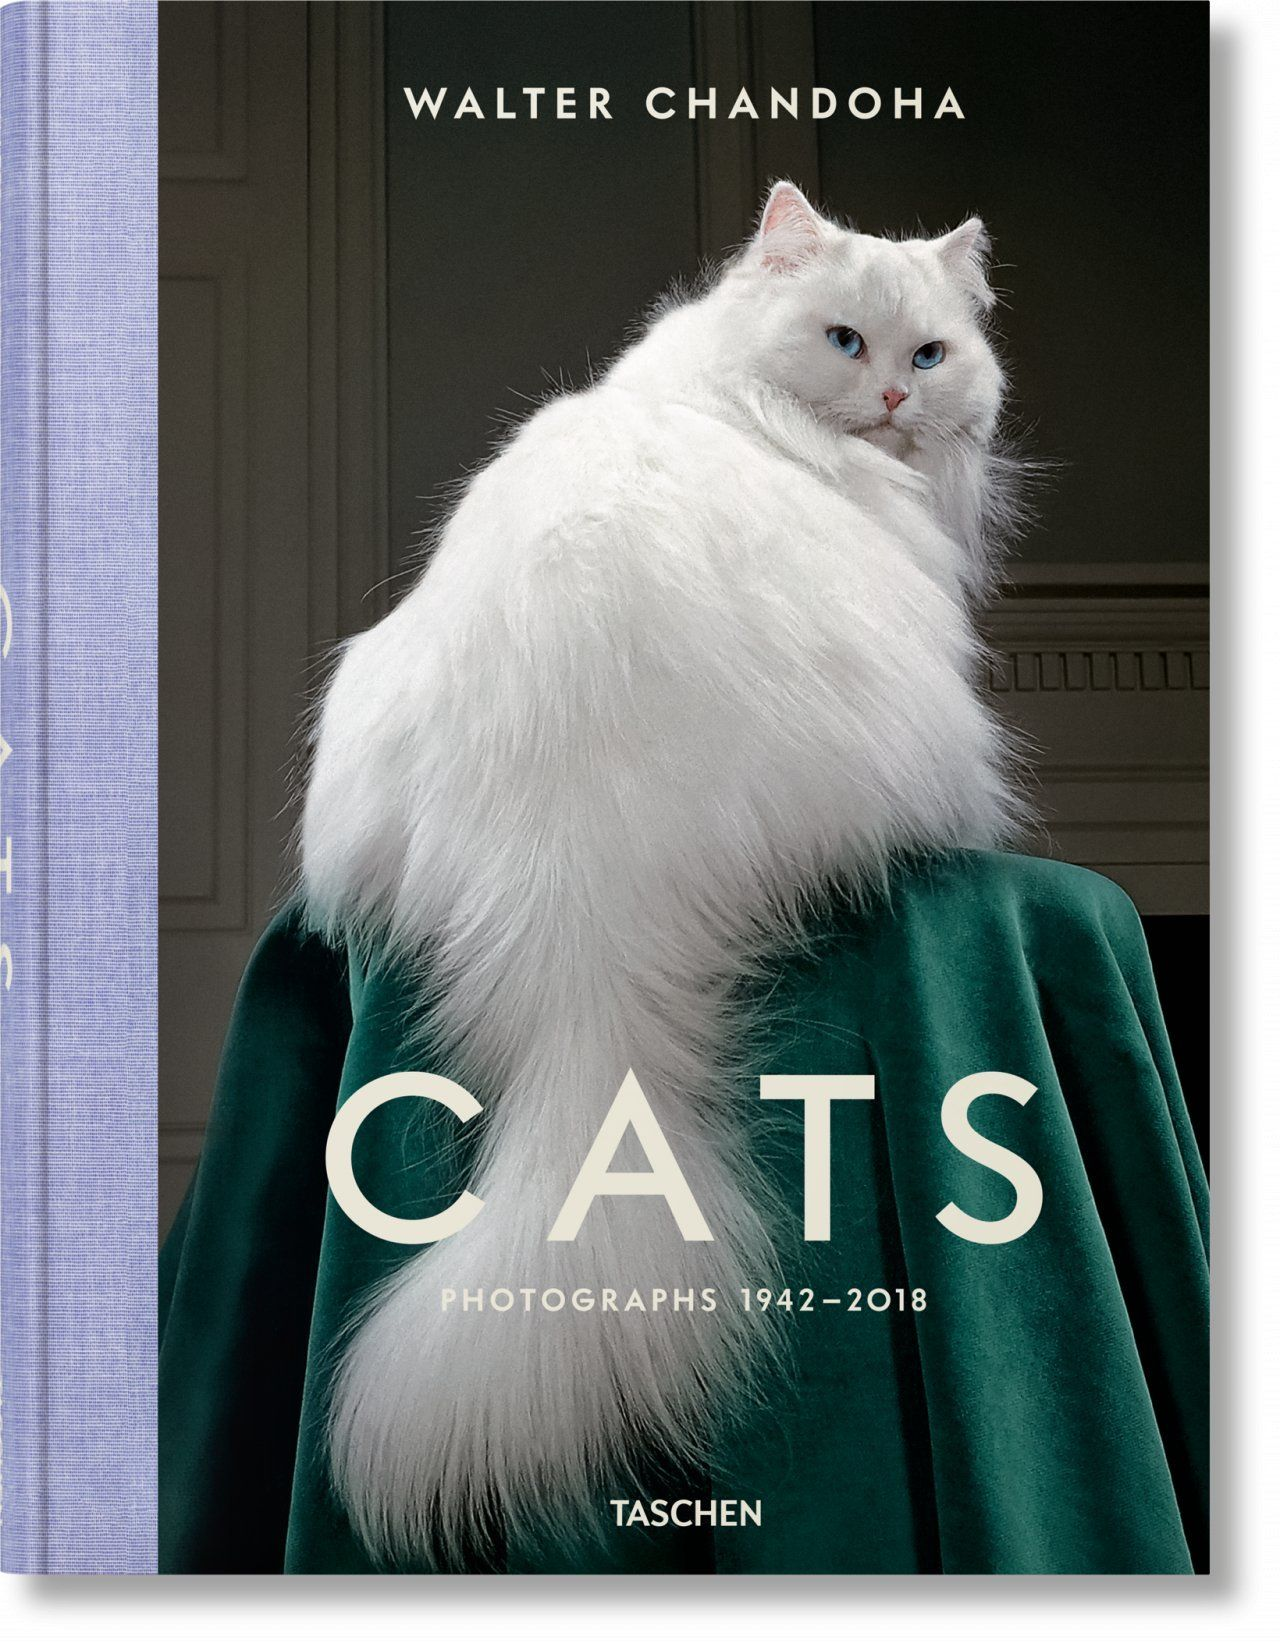 CATS PHOTOGRAPHS 19422018